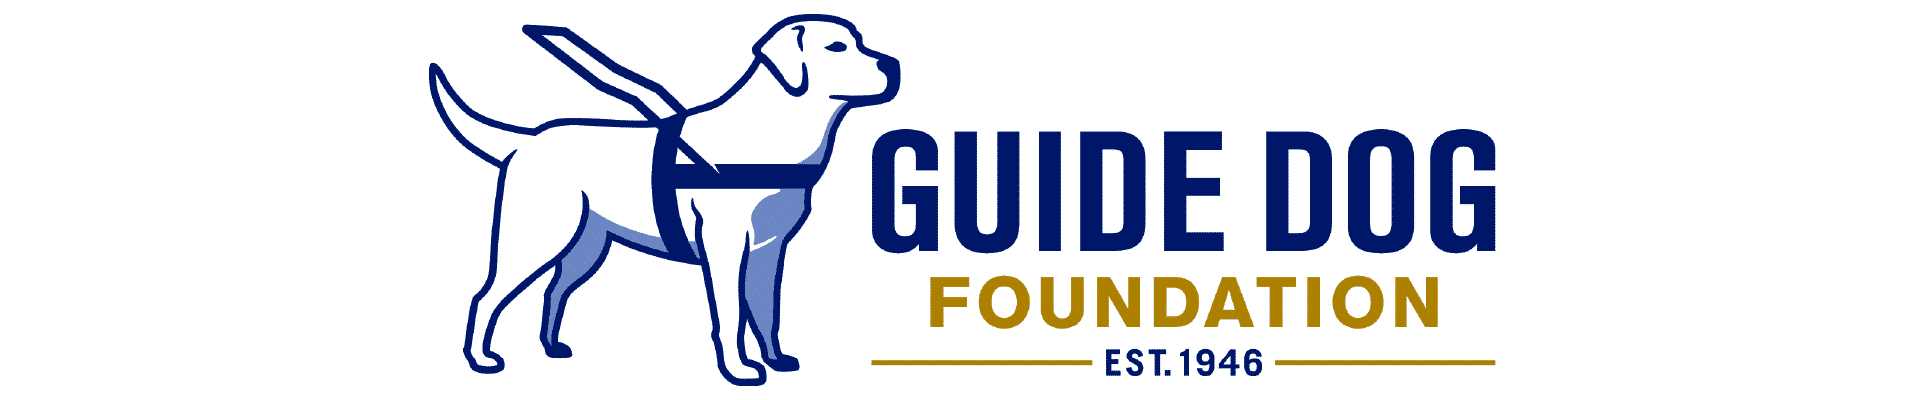 nonprofit charity logo of the guide dog foundation on a white background